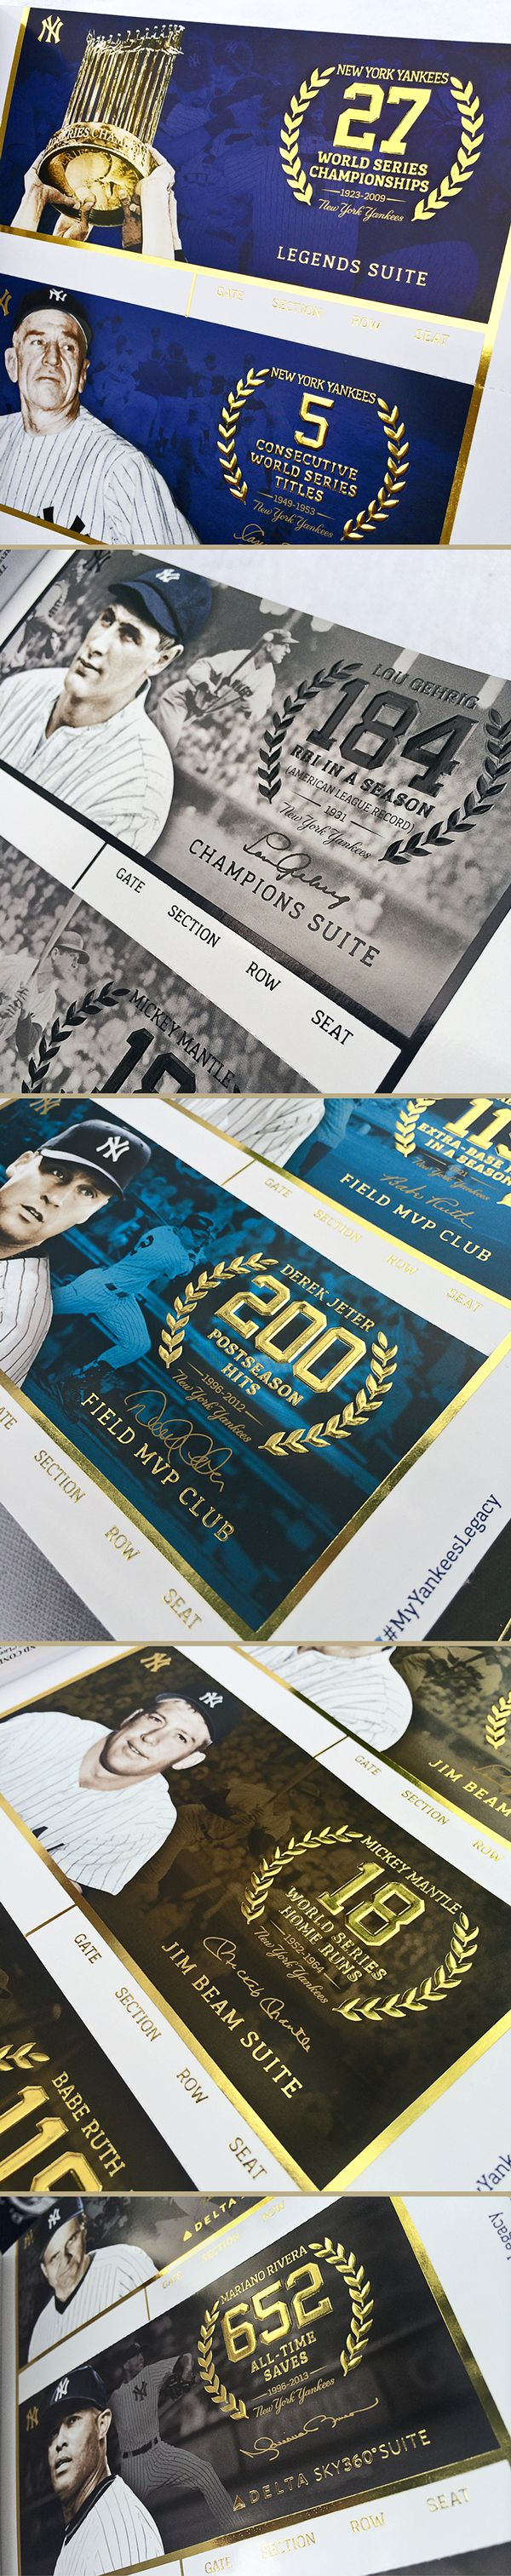 ~Gift For The Ultimate New York Yankee Fan: VIP Tickets To New York Yankees Premium Suites | House of Beccaria